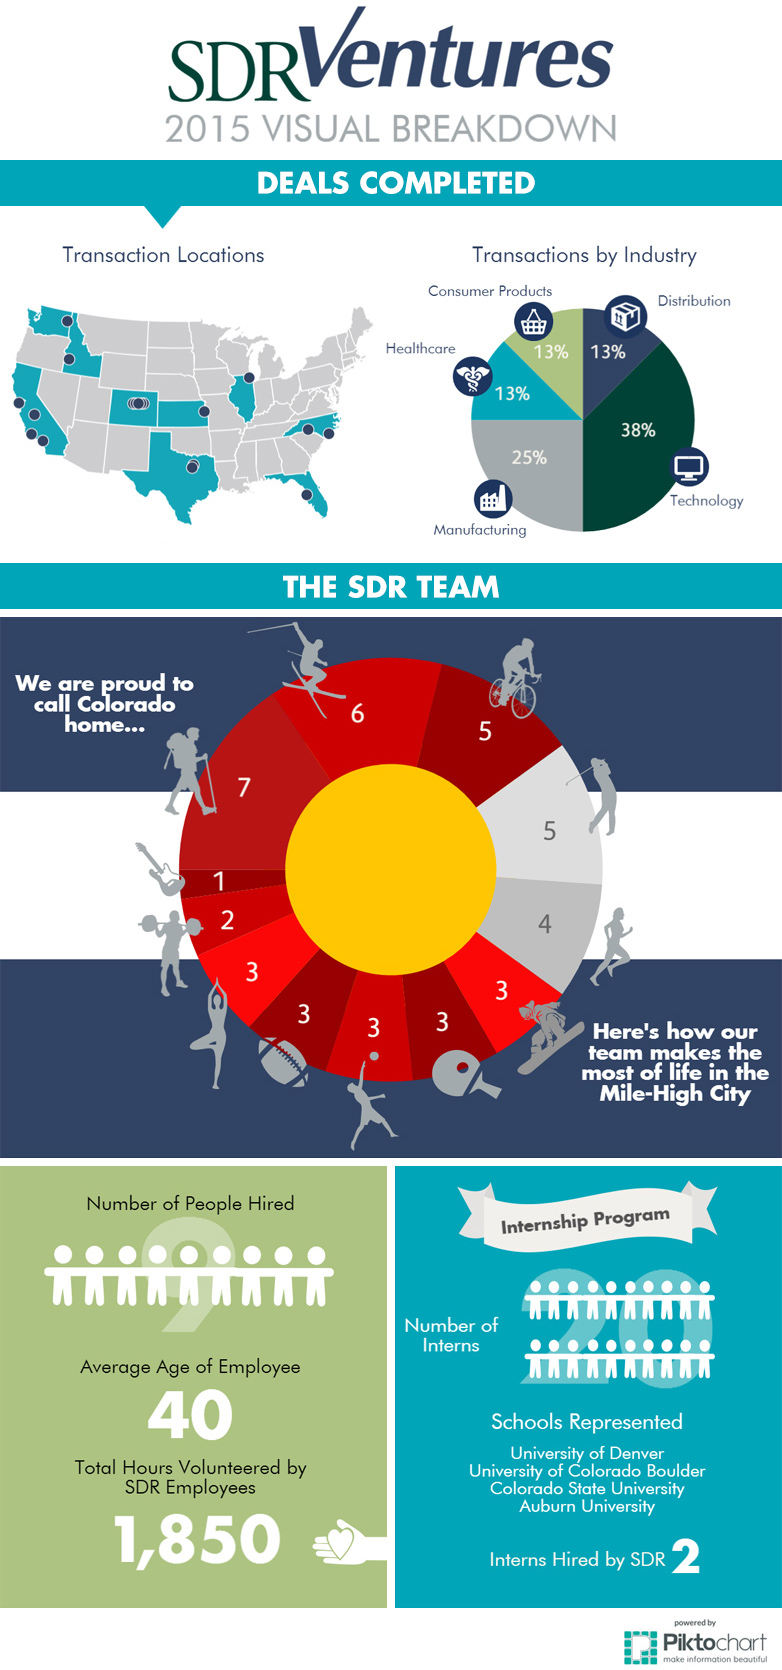 SDR Ventures 2015 Visual Breakdown